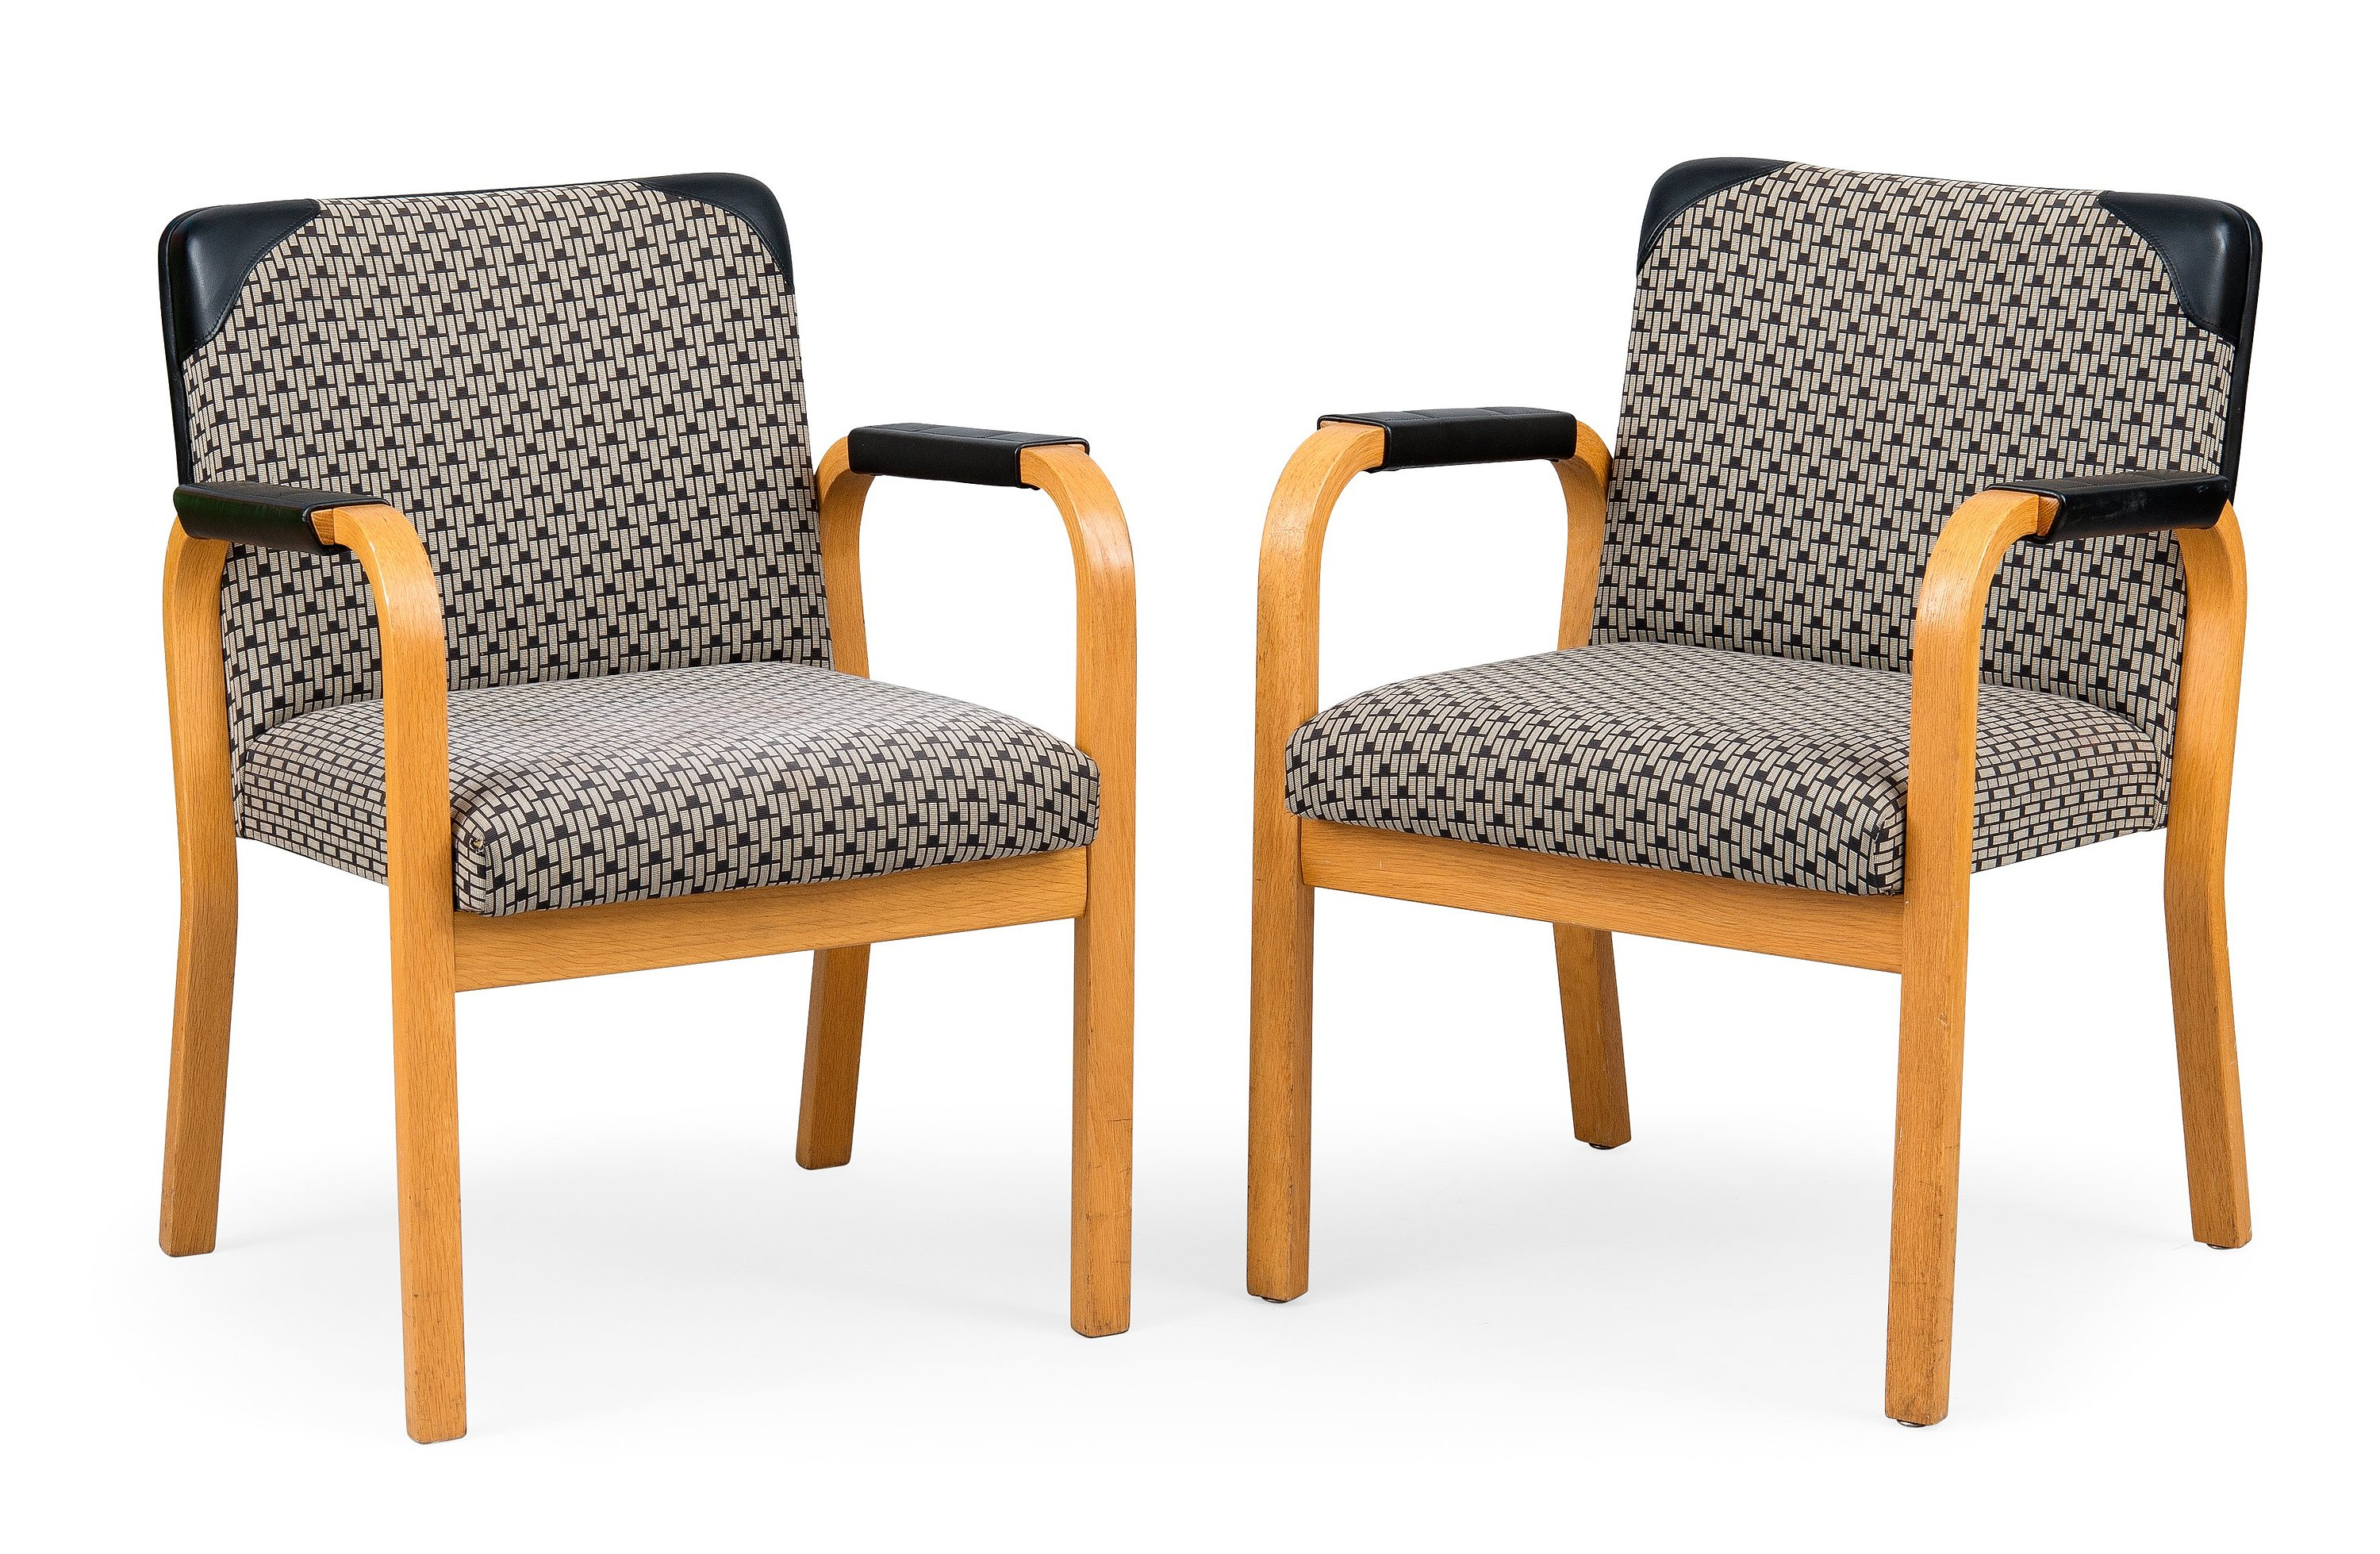 ALVAR AALTO, A PAIR OF ARMCHAIRS, No 46.